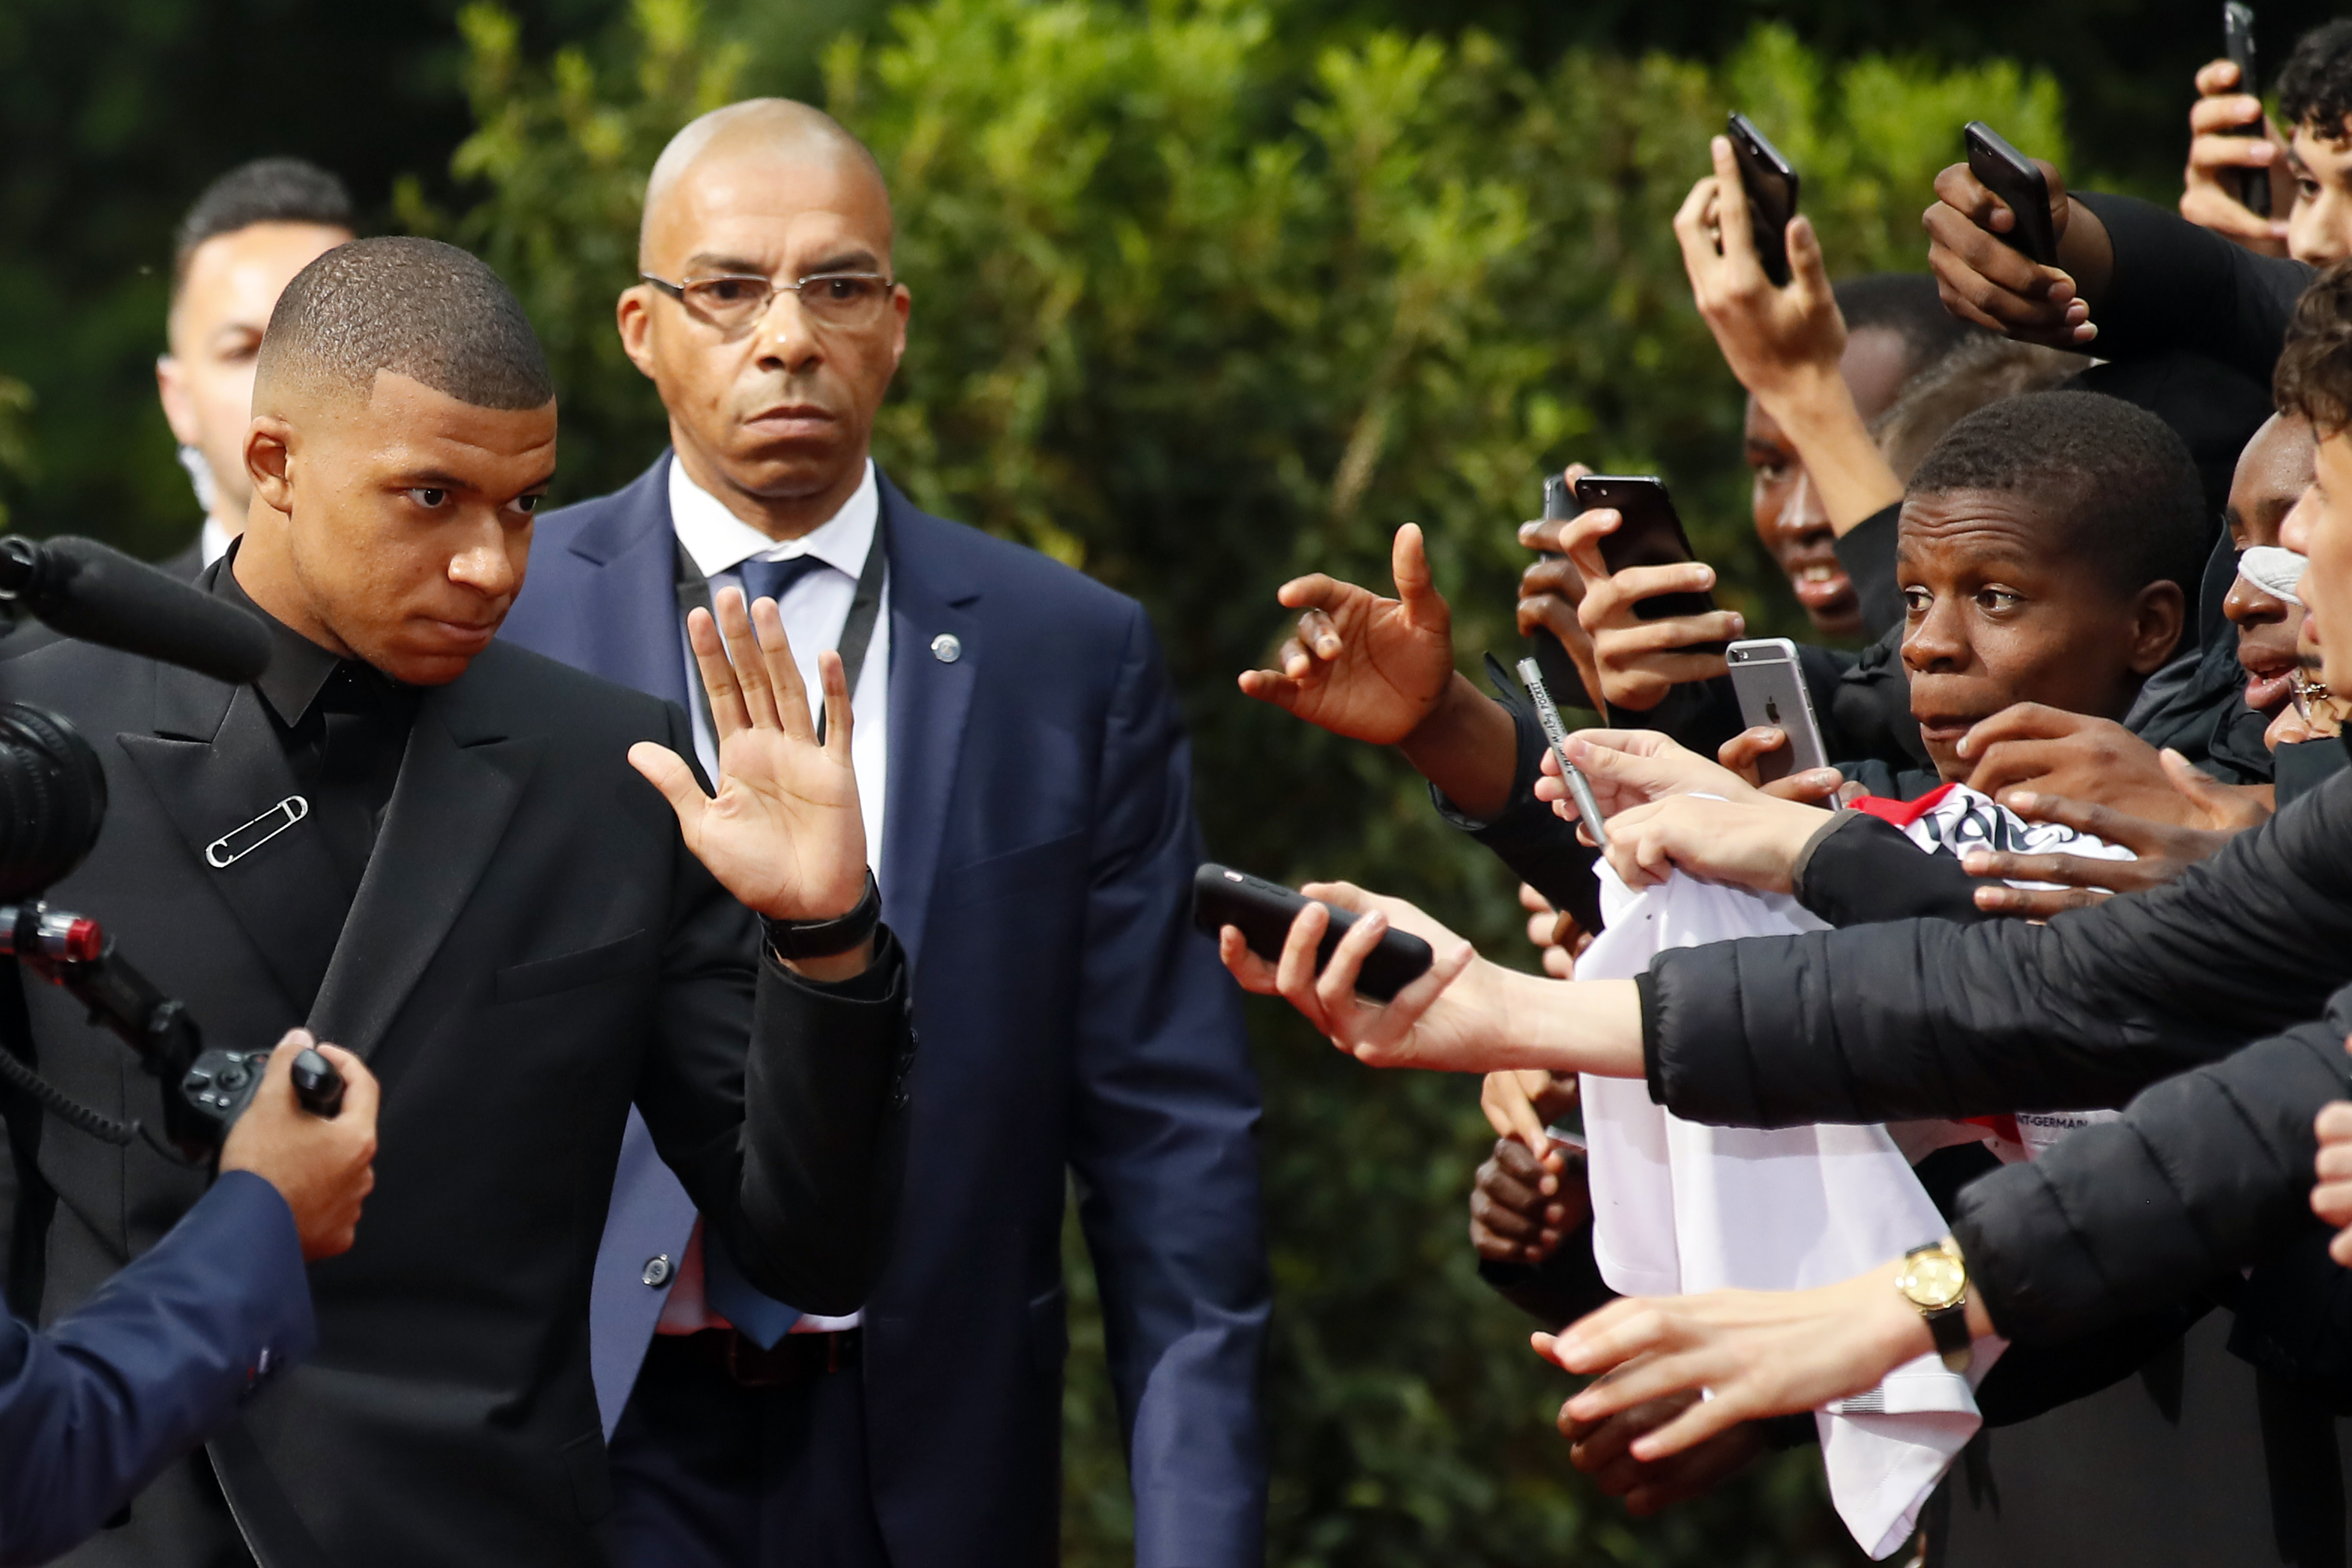 Mbappe arrives at the award ceremony. Image: PA Images